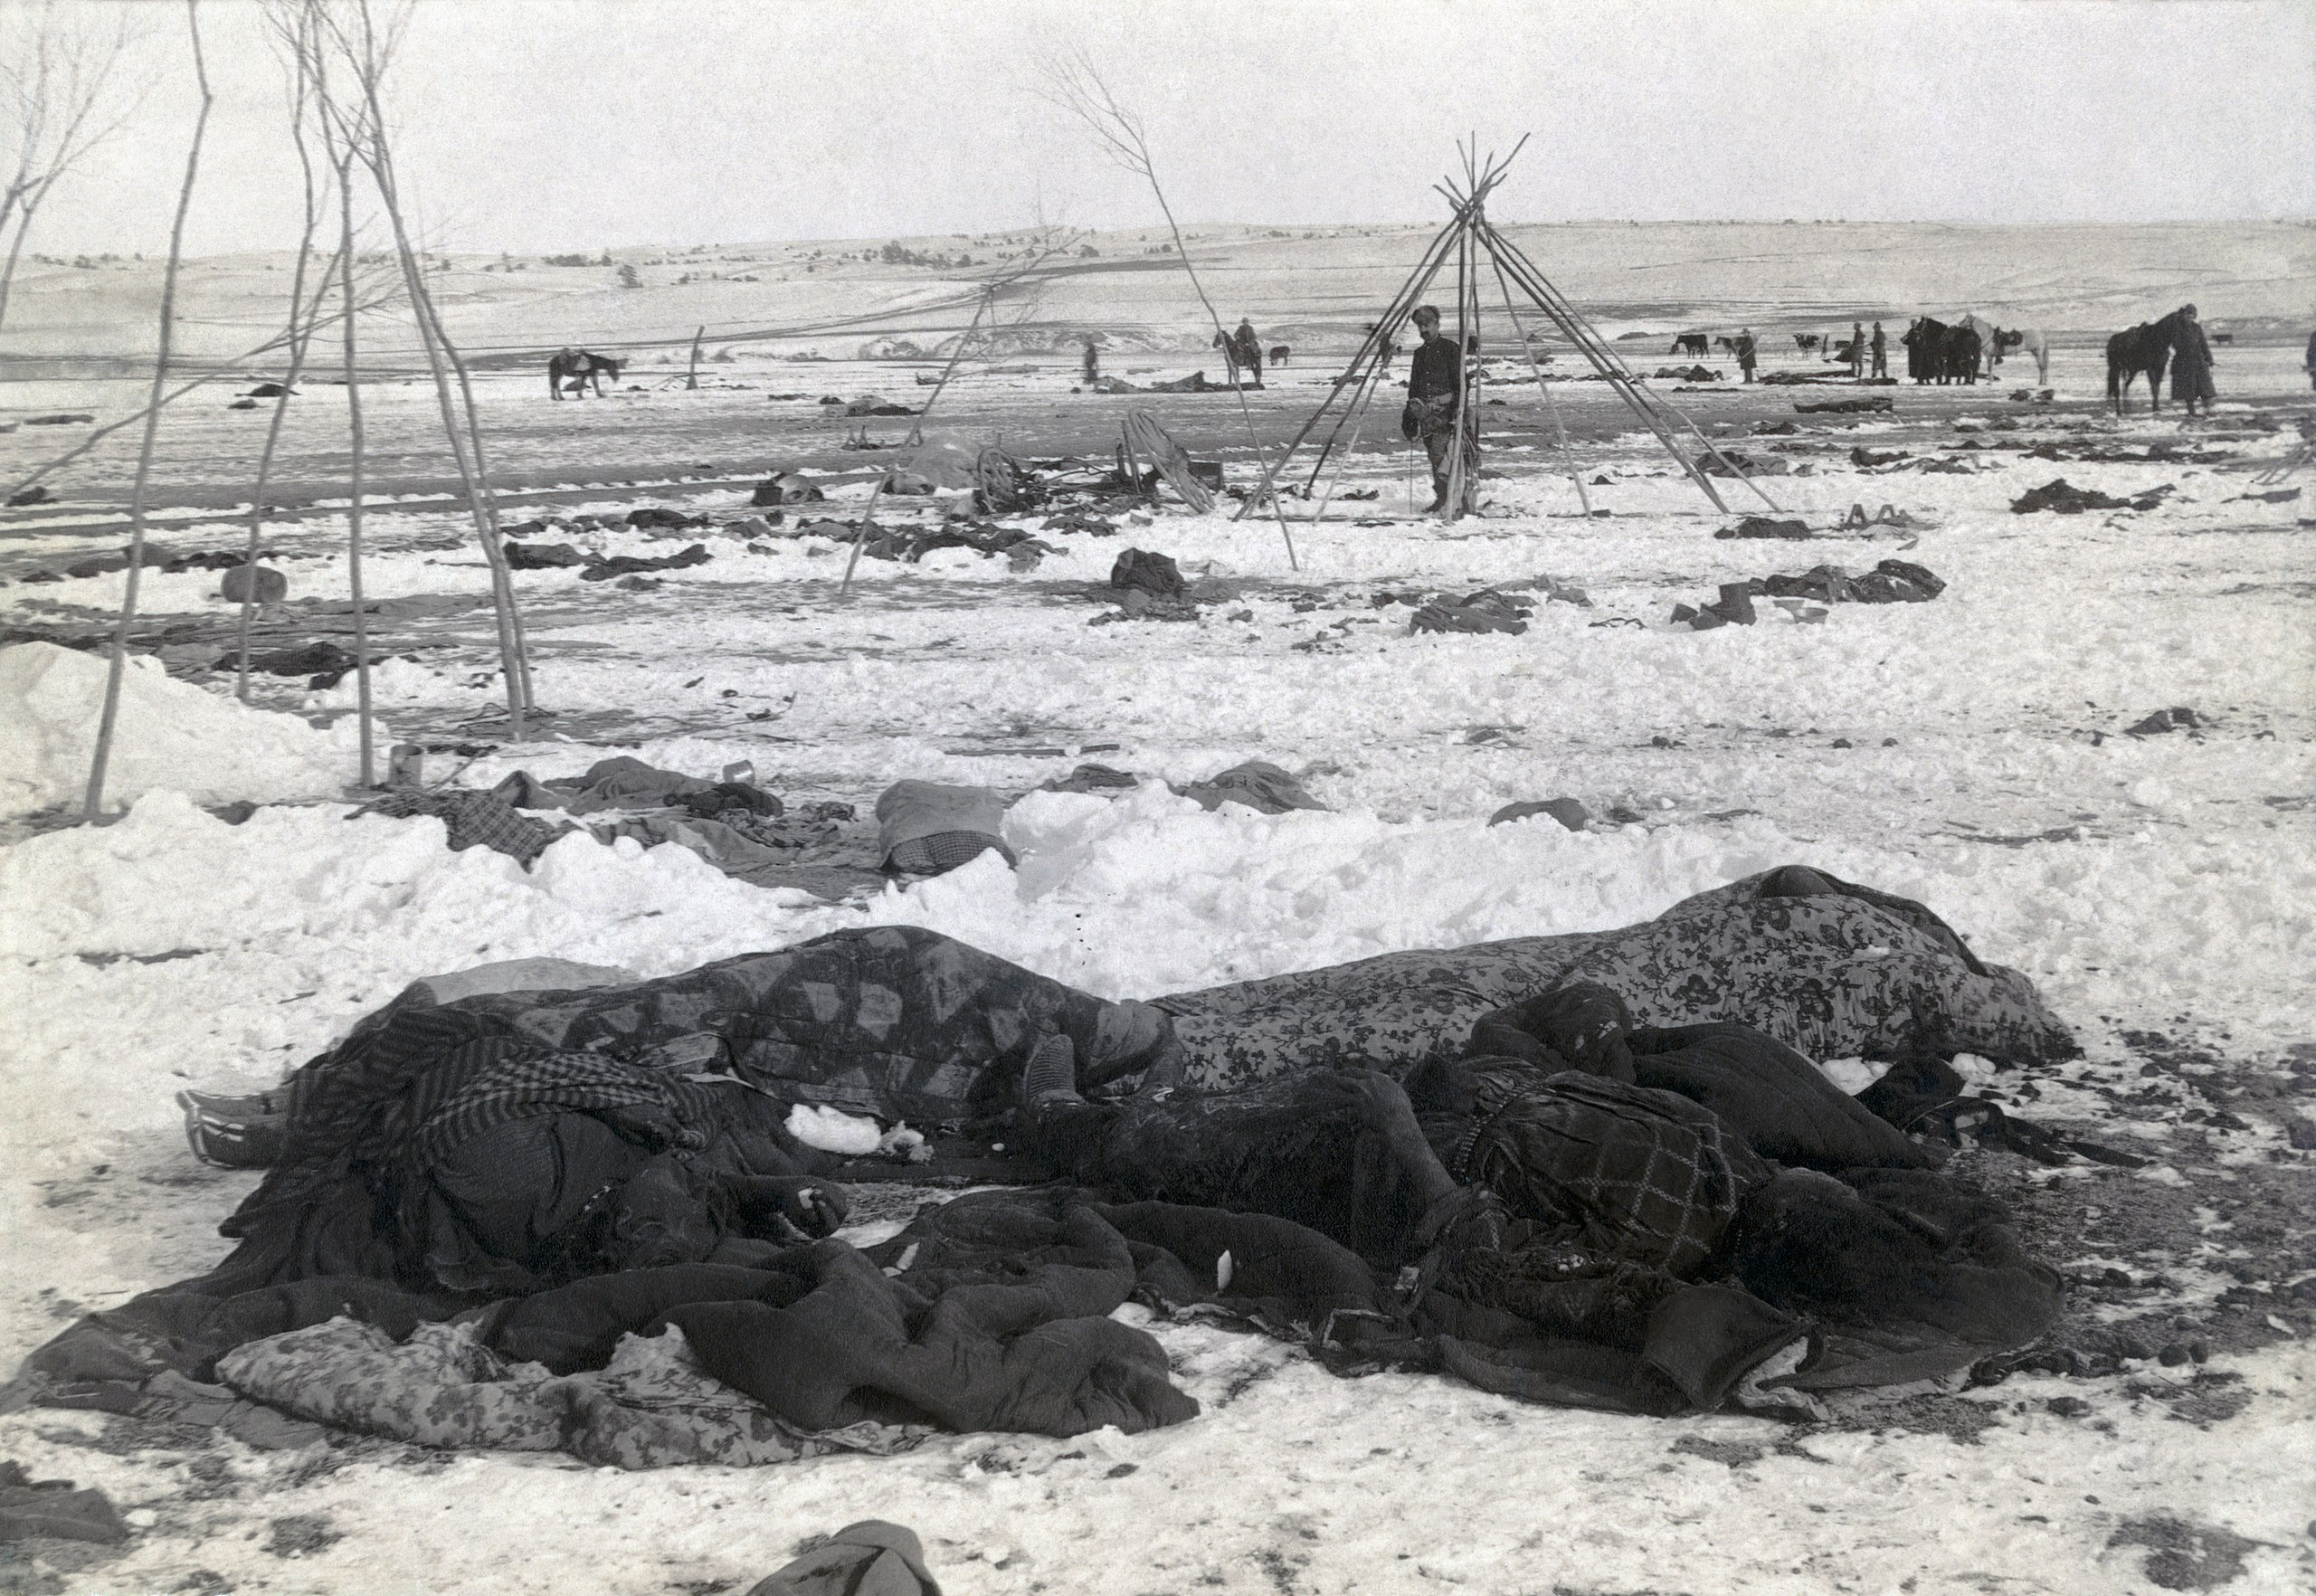 """Public Domain Image: Bibliographic caption: """"Big Foot's camp three weeks after Wounded Knee Massacre; with bodies of four Lakota Sioux wrapped in blankets in the foreground; U.S. soldiers amid scattered debris of camp"""""""